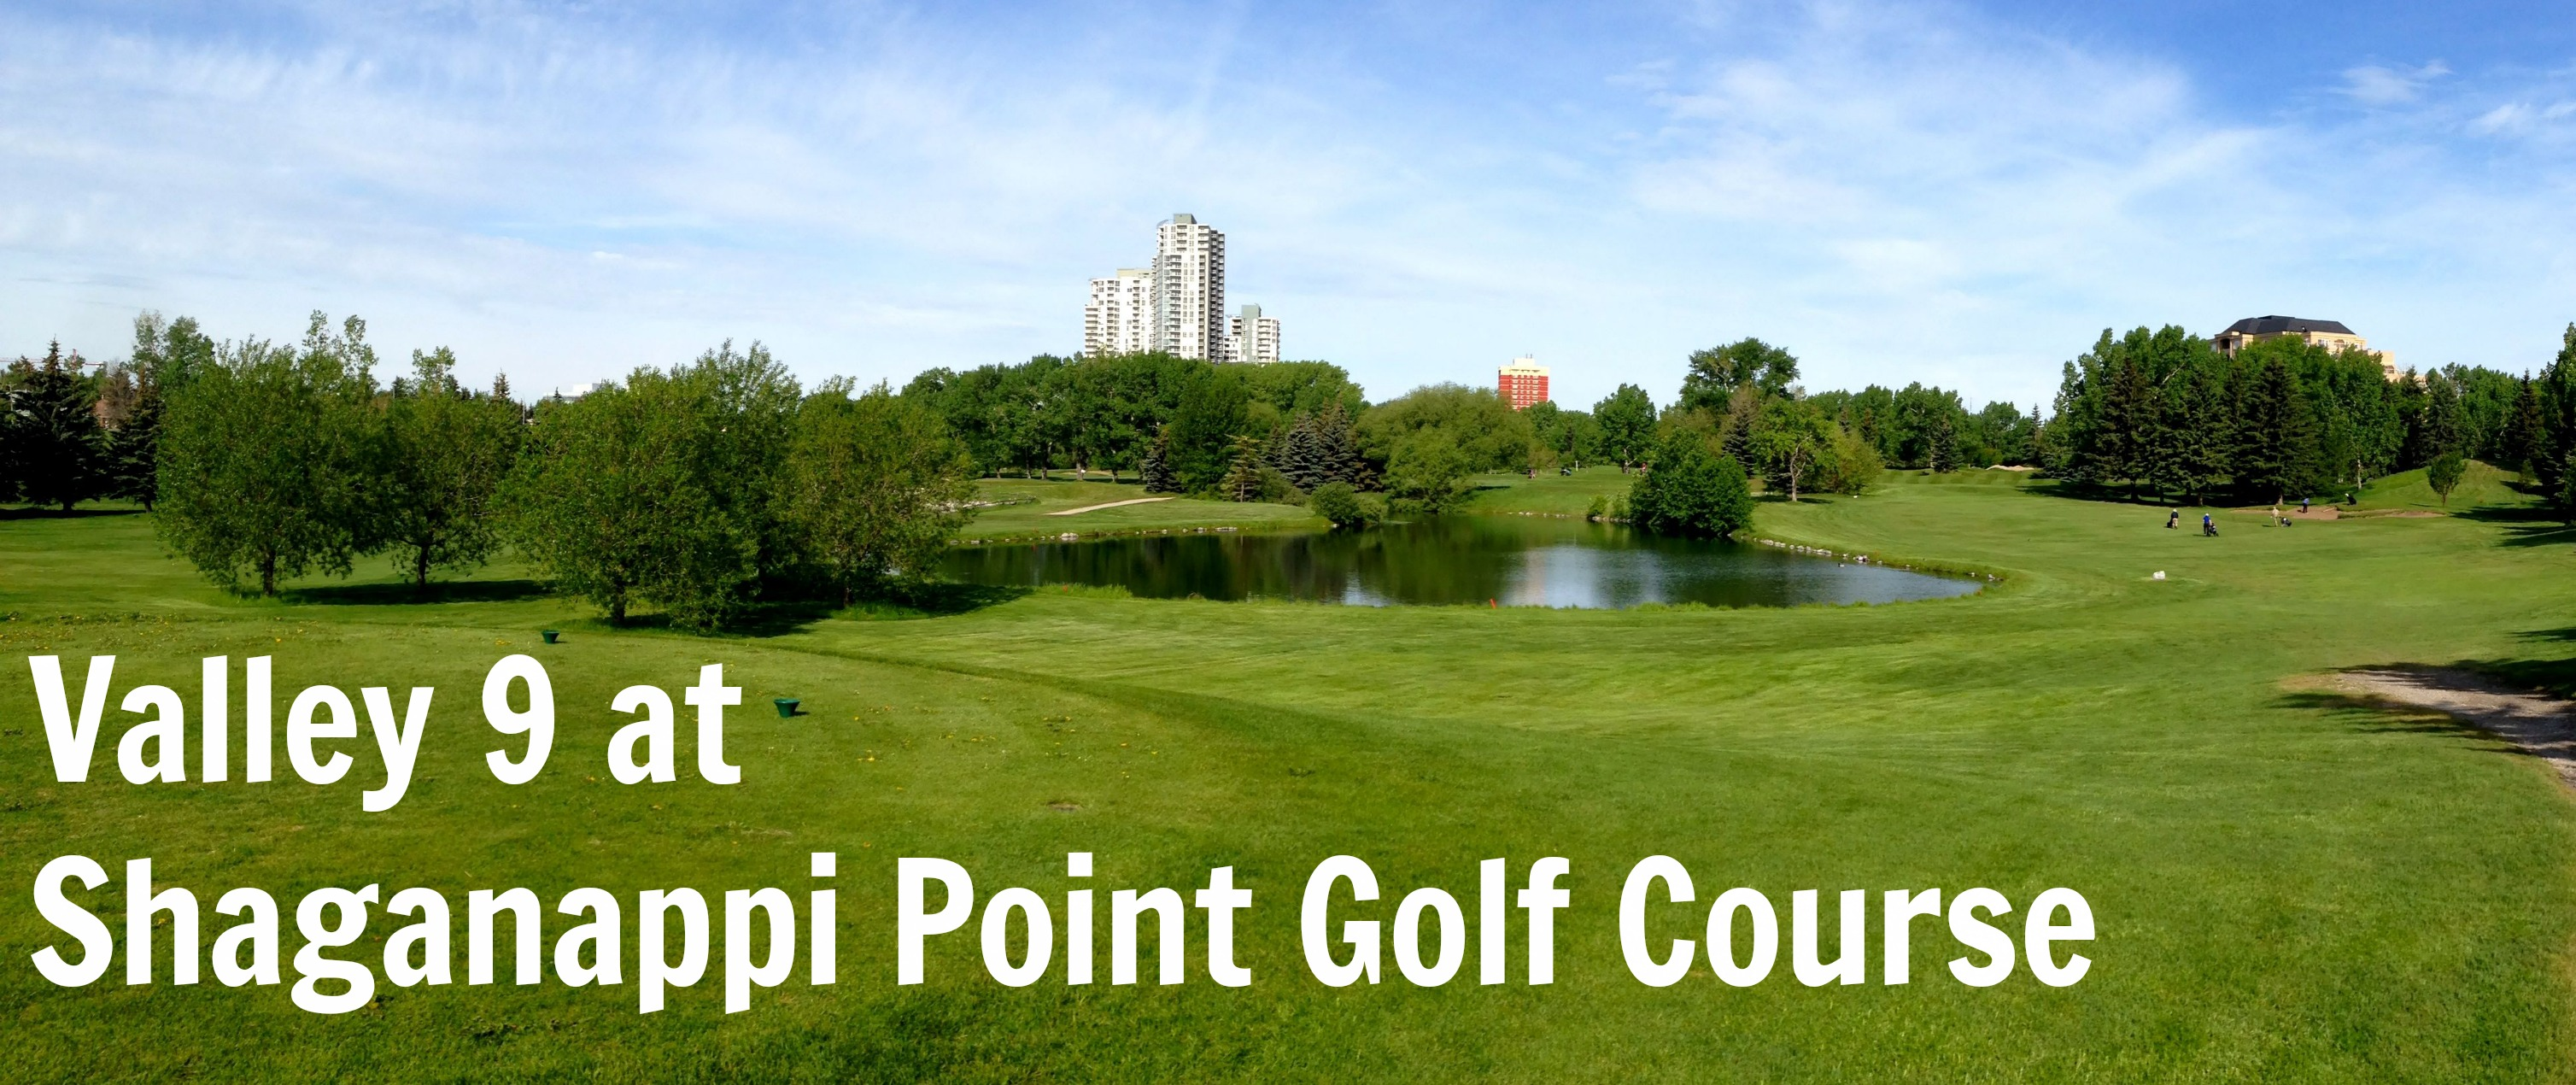 Shaganappi Point Golf Course Valley 9